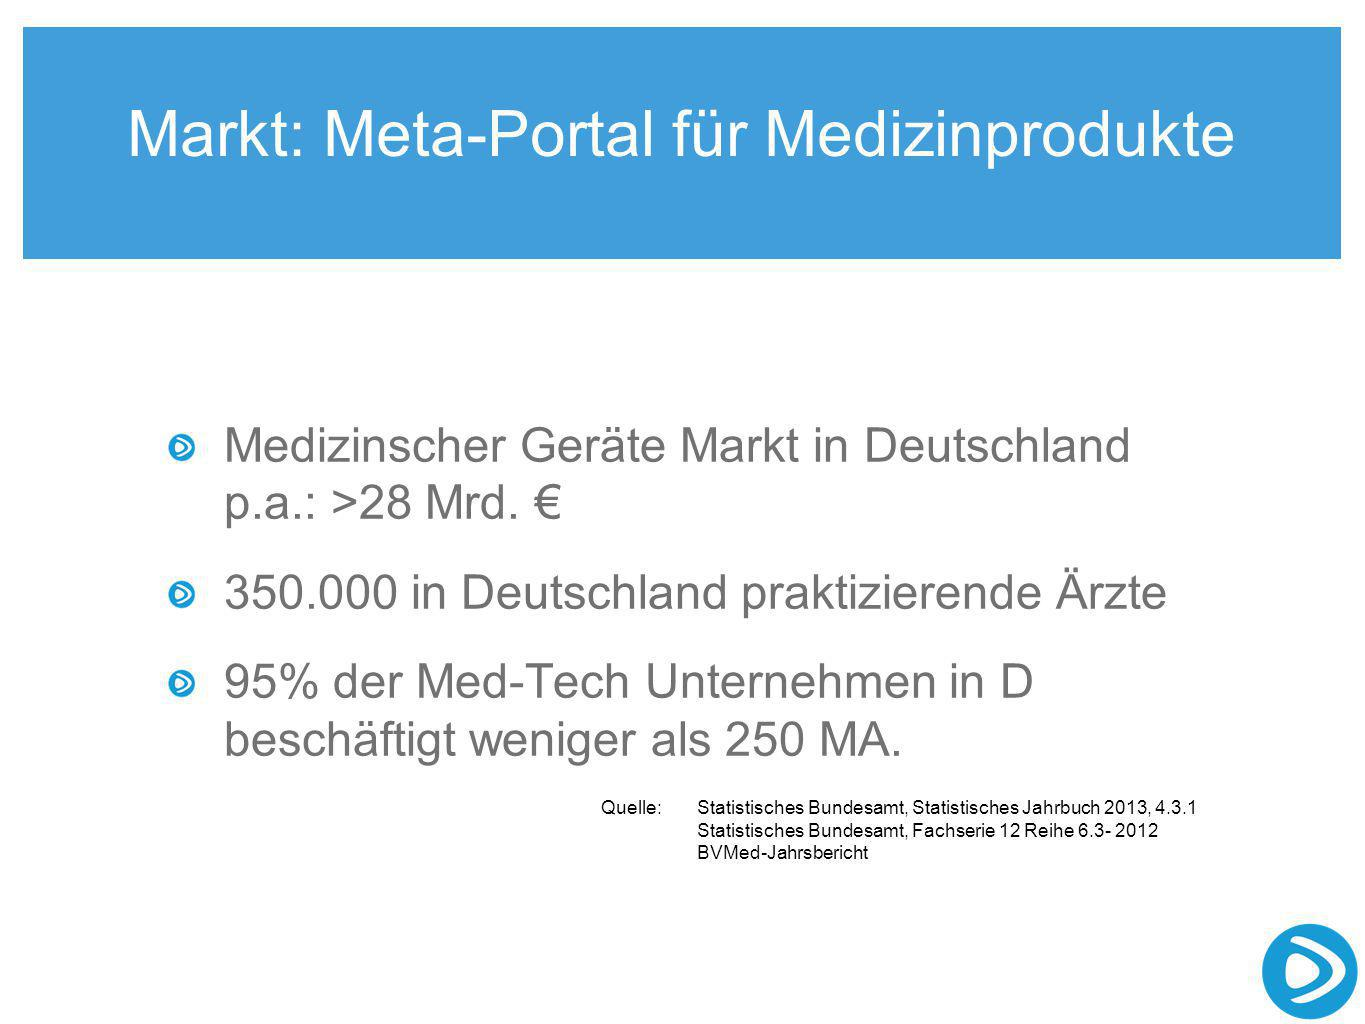 "Problem für Medical Device Hersteller ""..."